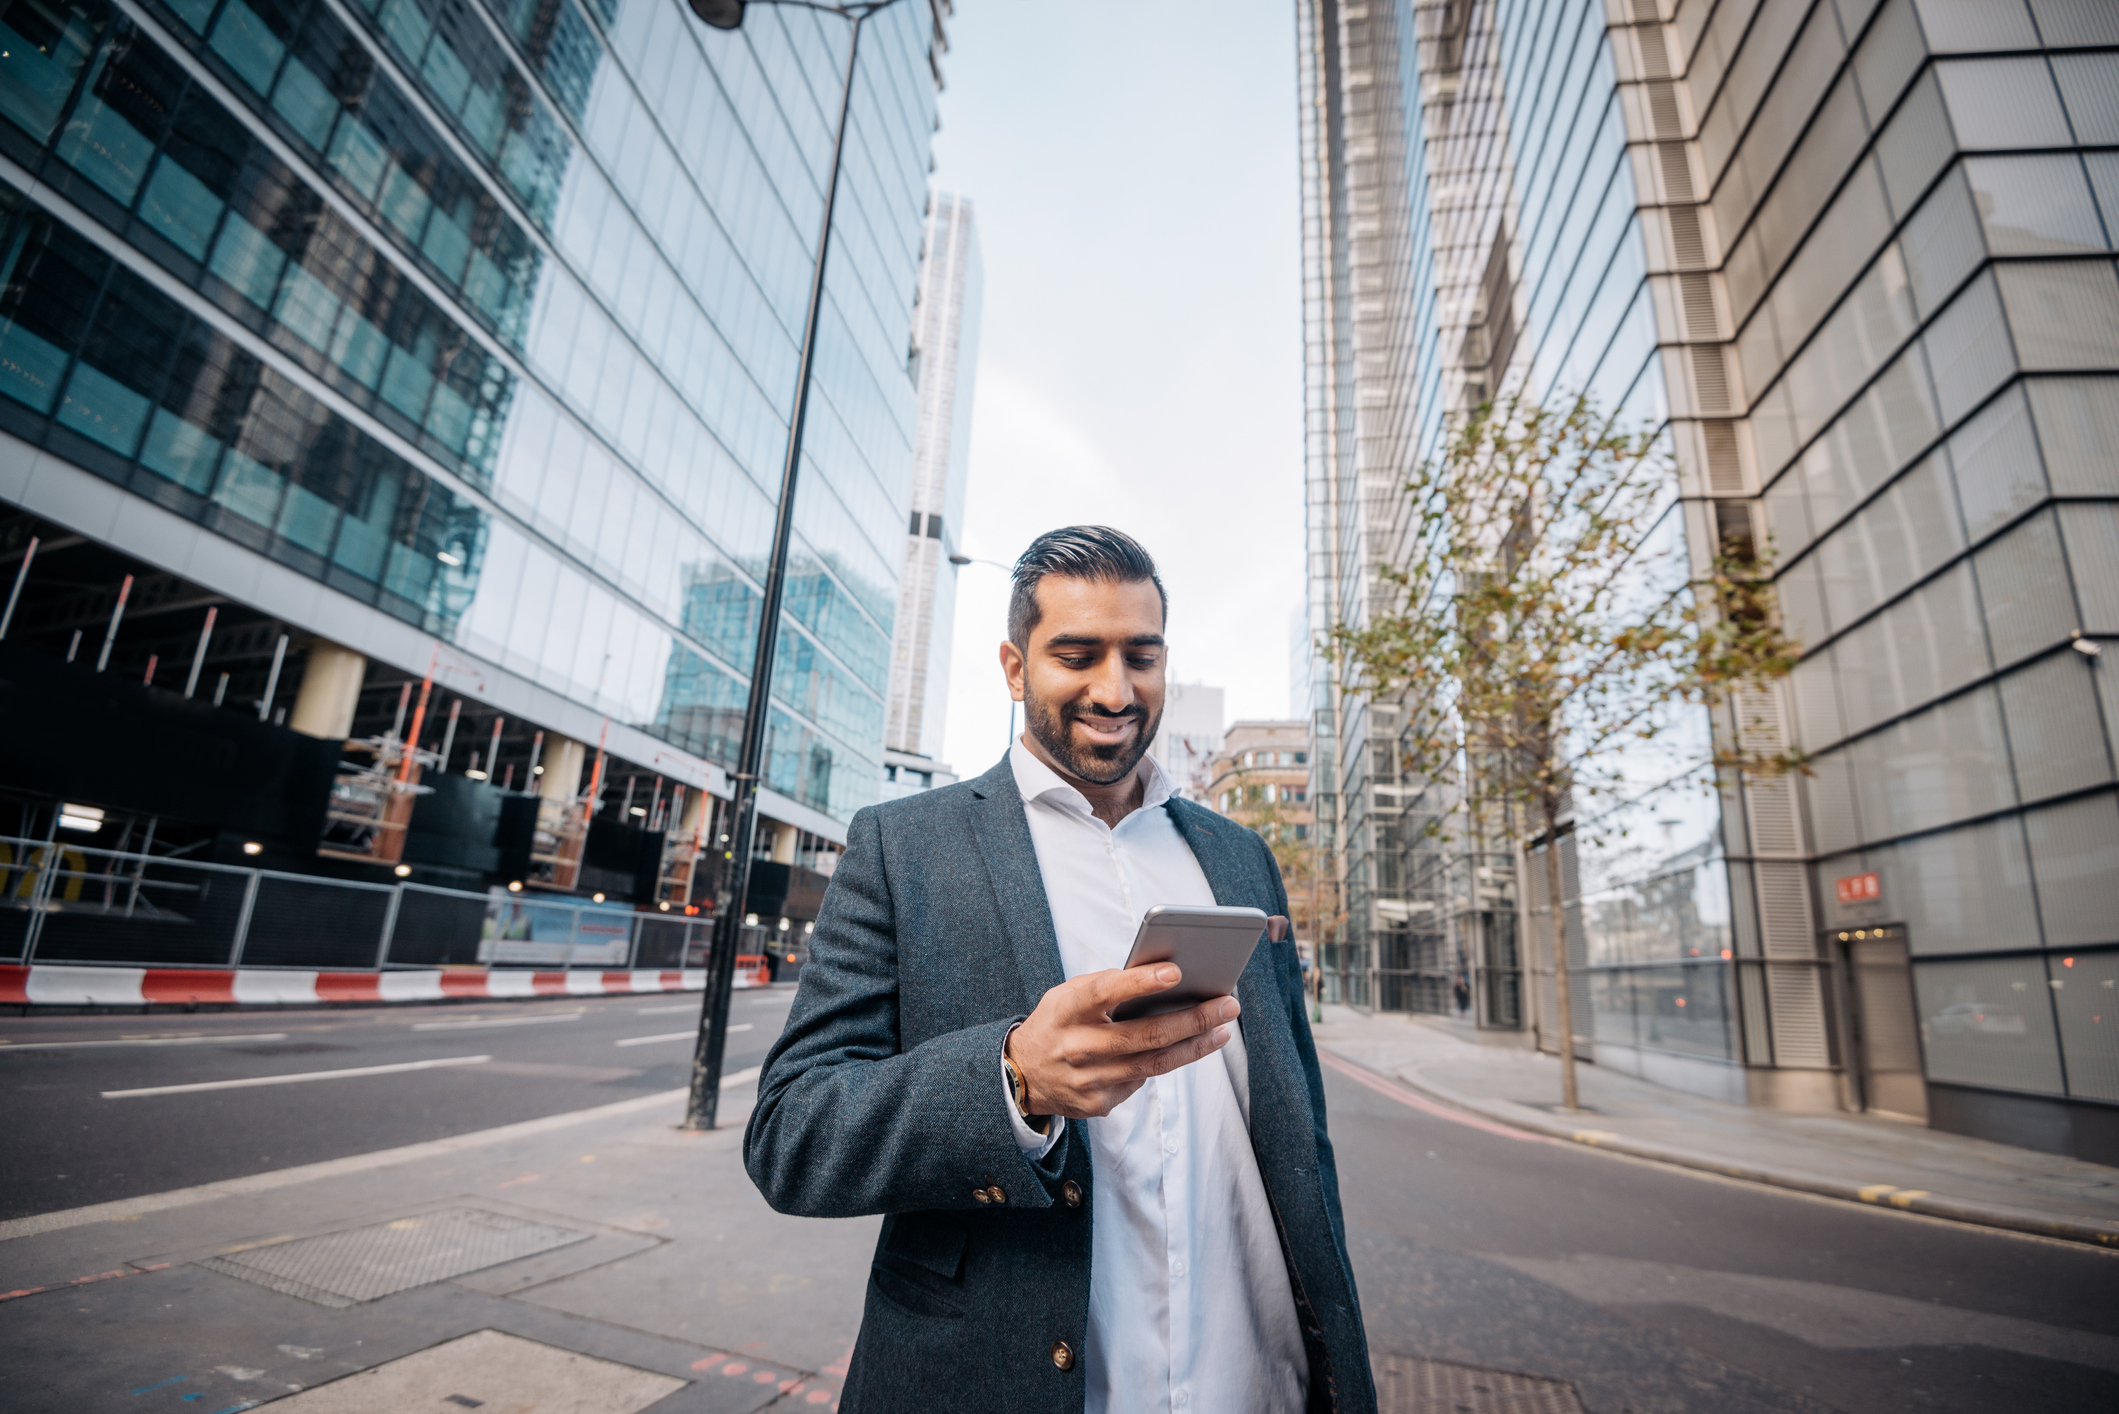 Salesman walking down street and texting with conversational sales